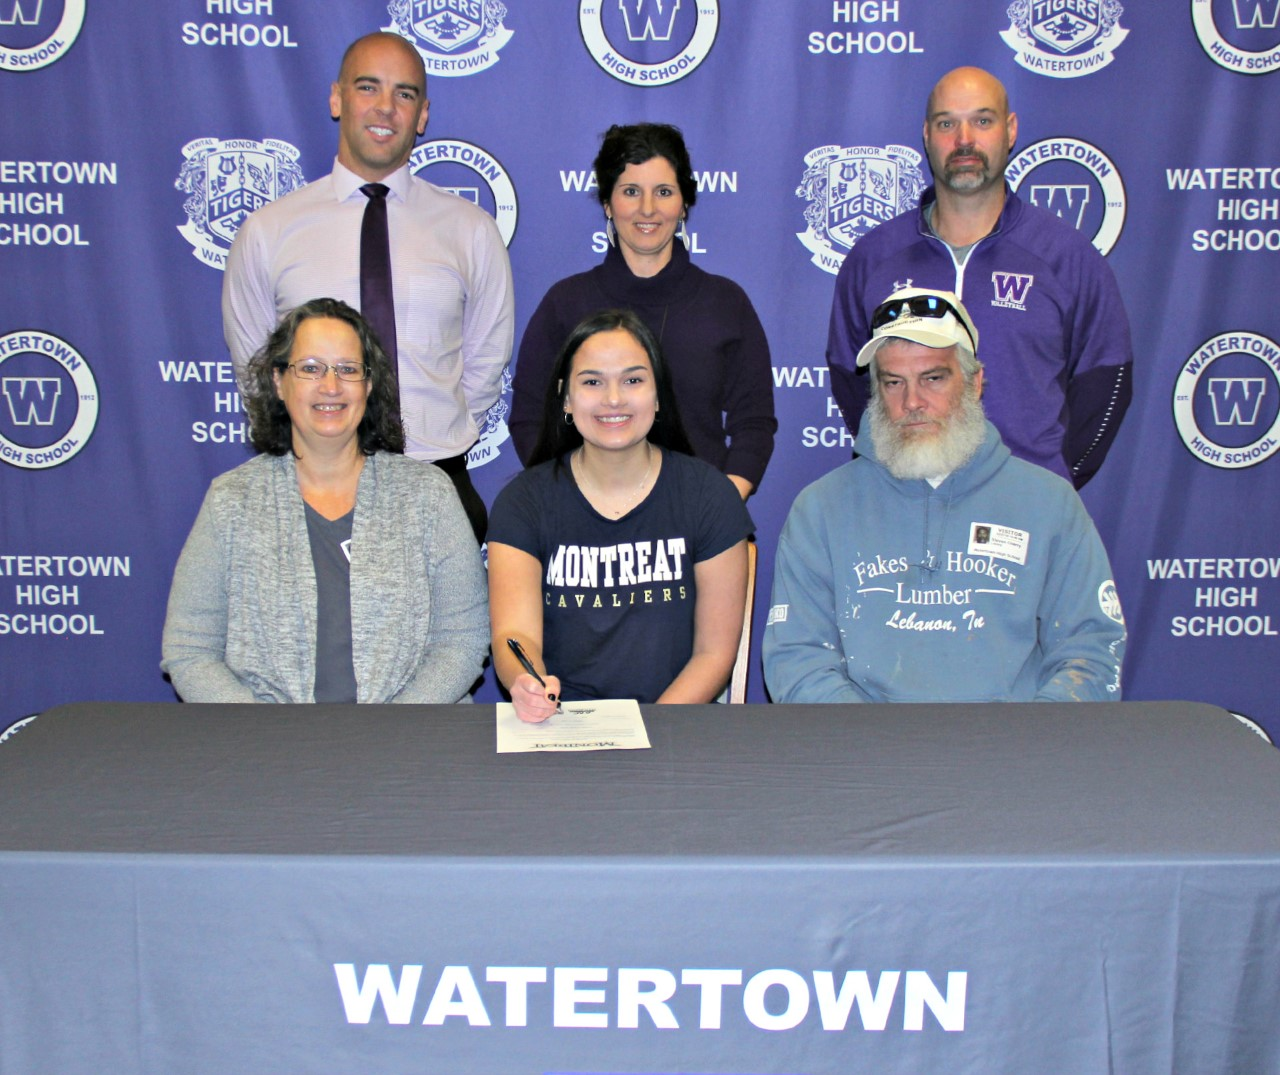 Cherry Signs With Montreat College Volleyball